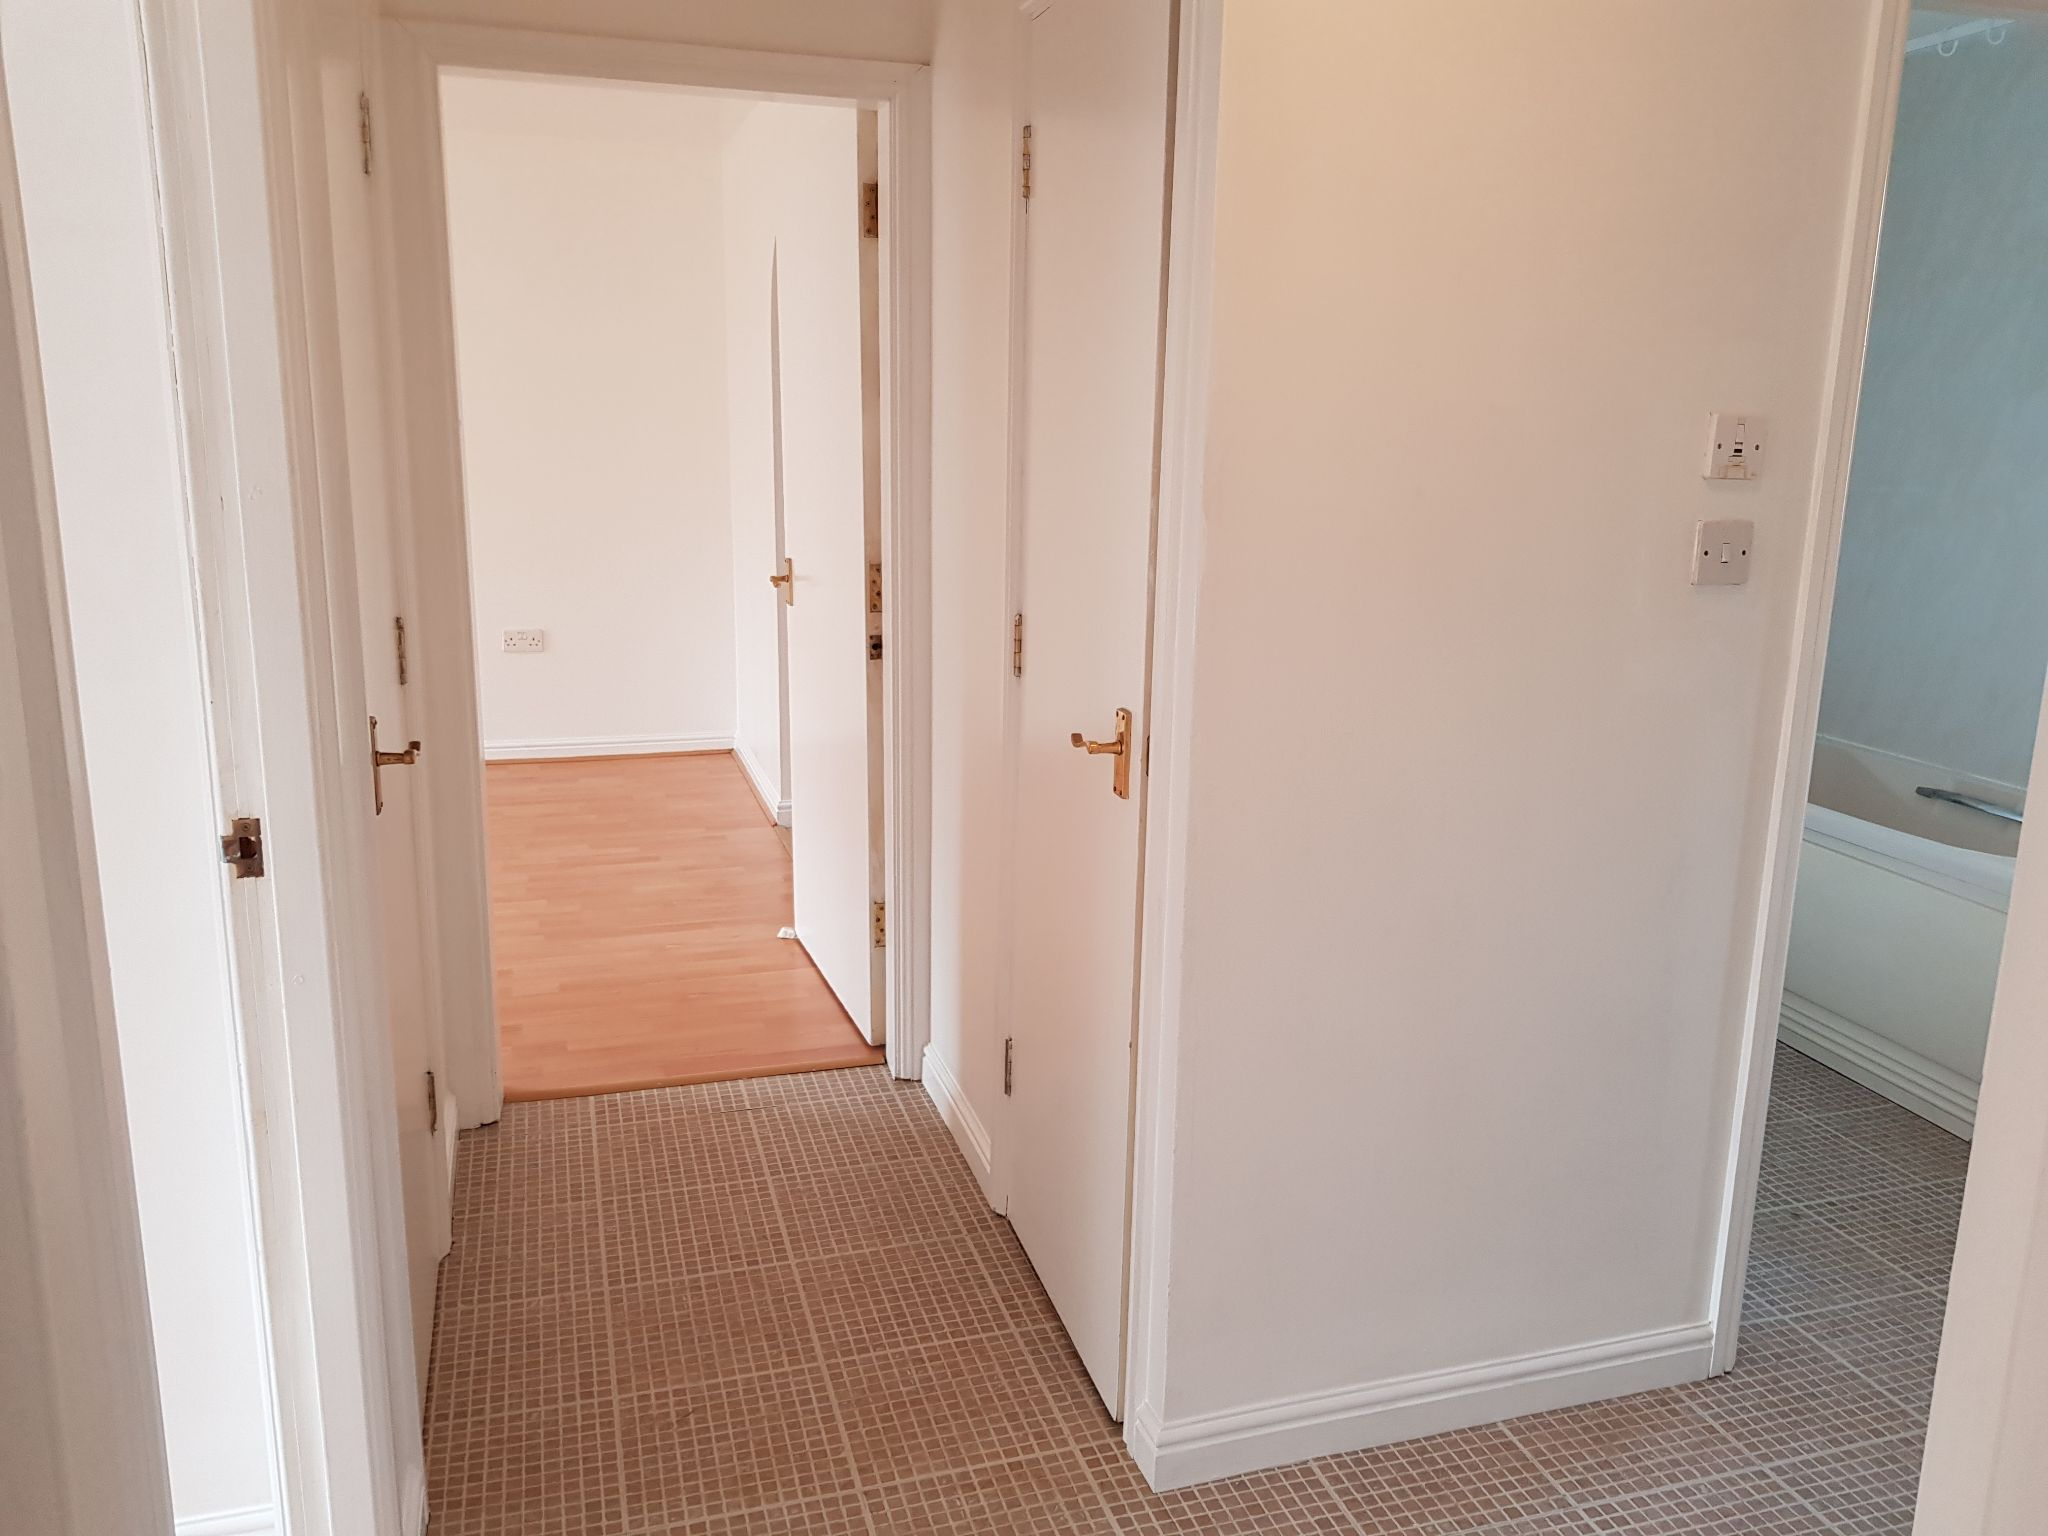 2 Bed Ground Floor Flat/apartment For Sale - Hallway